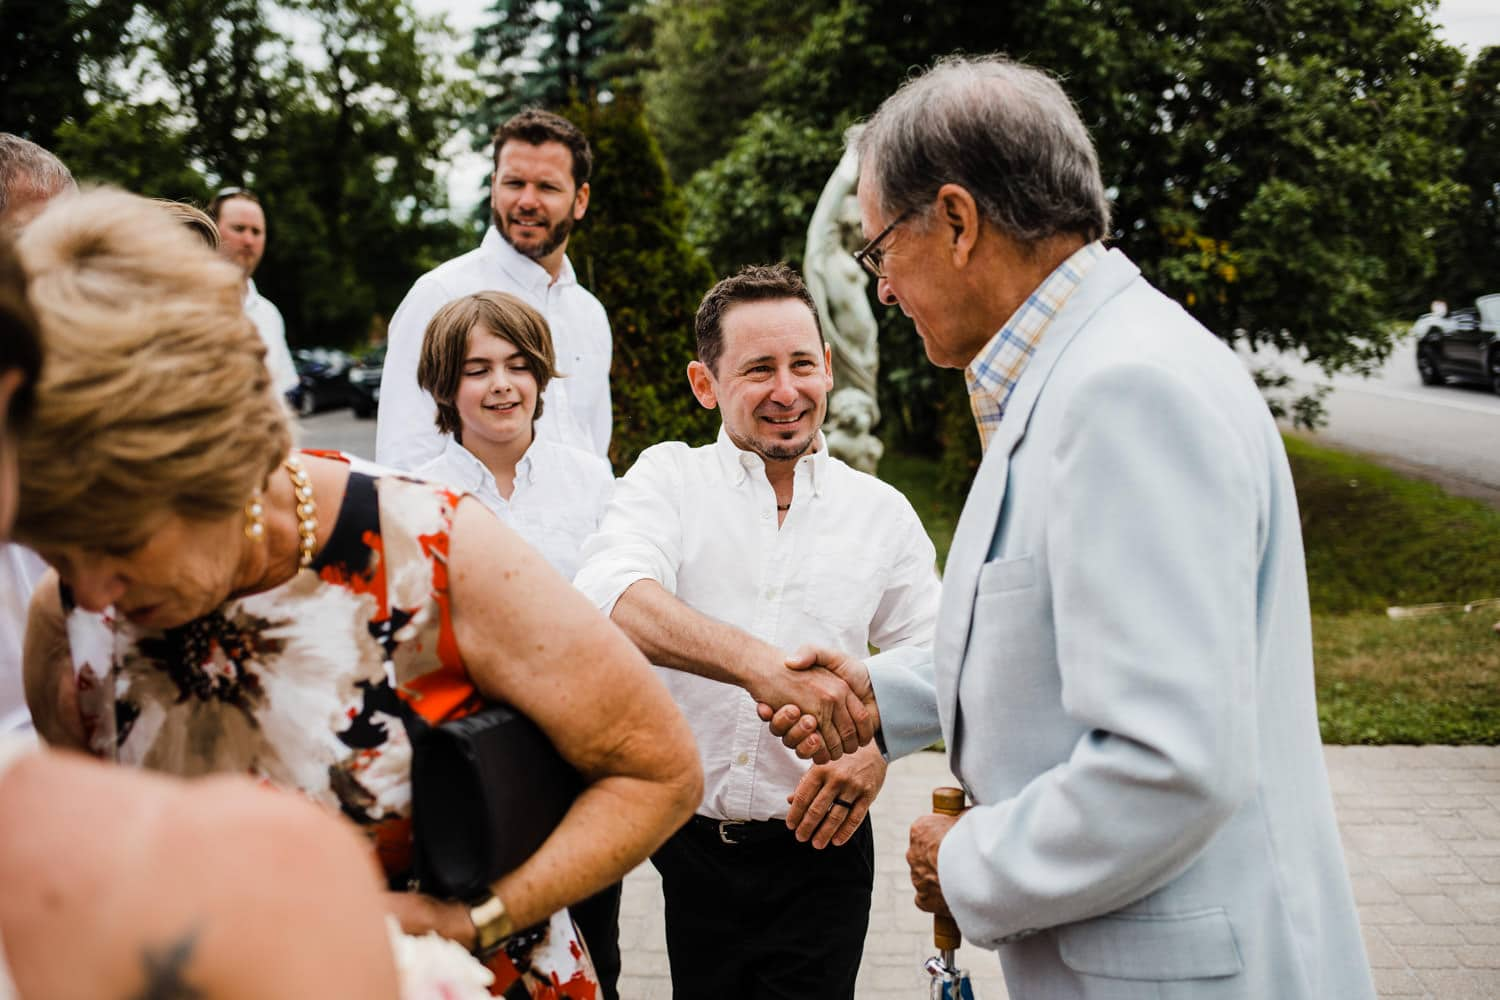 groom mingles with guests after the ceremony - intimate wedding at the schoolhouse